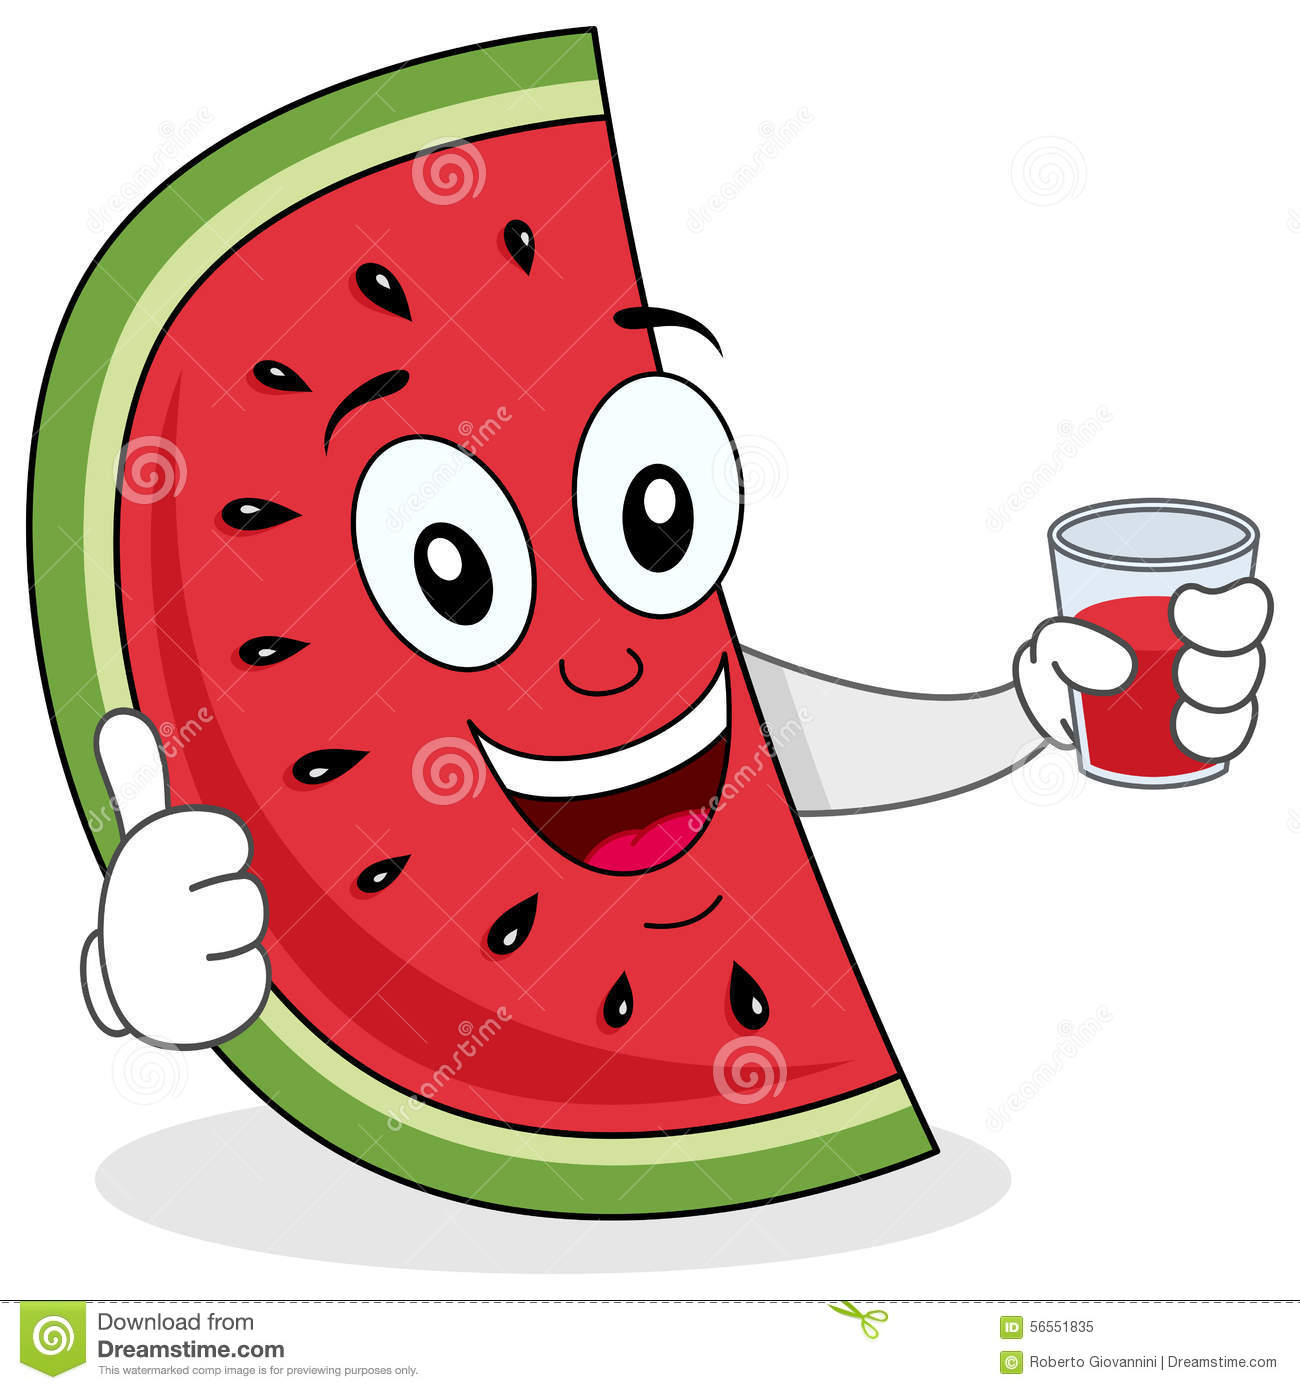 Stock Illustration Cartoon Peaches Nectarines Apricots Fruits Happy Red Orange Sweet Aroma Yellow Green Leaves Style Agriculture Image62727671 further Category Pineapples together with Stock Illustration Watermelon Fresh Squeezed Juice Happy Cartoon Character Smiling Thumbs Up Holding Glass Isolated White Image56551835 further Orange Cartoon Pictures besides Royalty Free Stock Photo Cute Girl Character Image19083025. on orange juice cartoon character